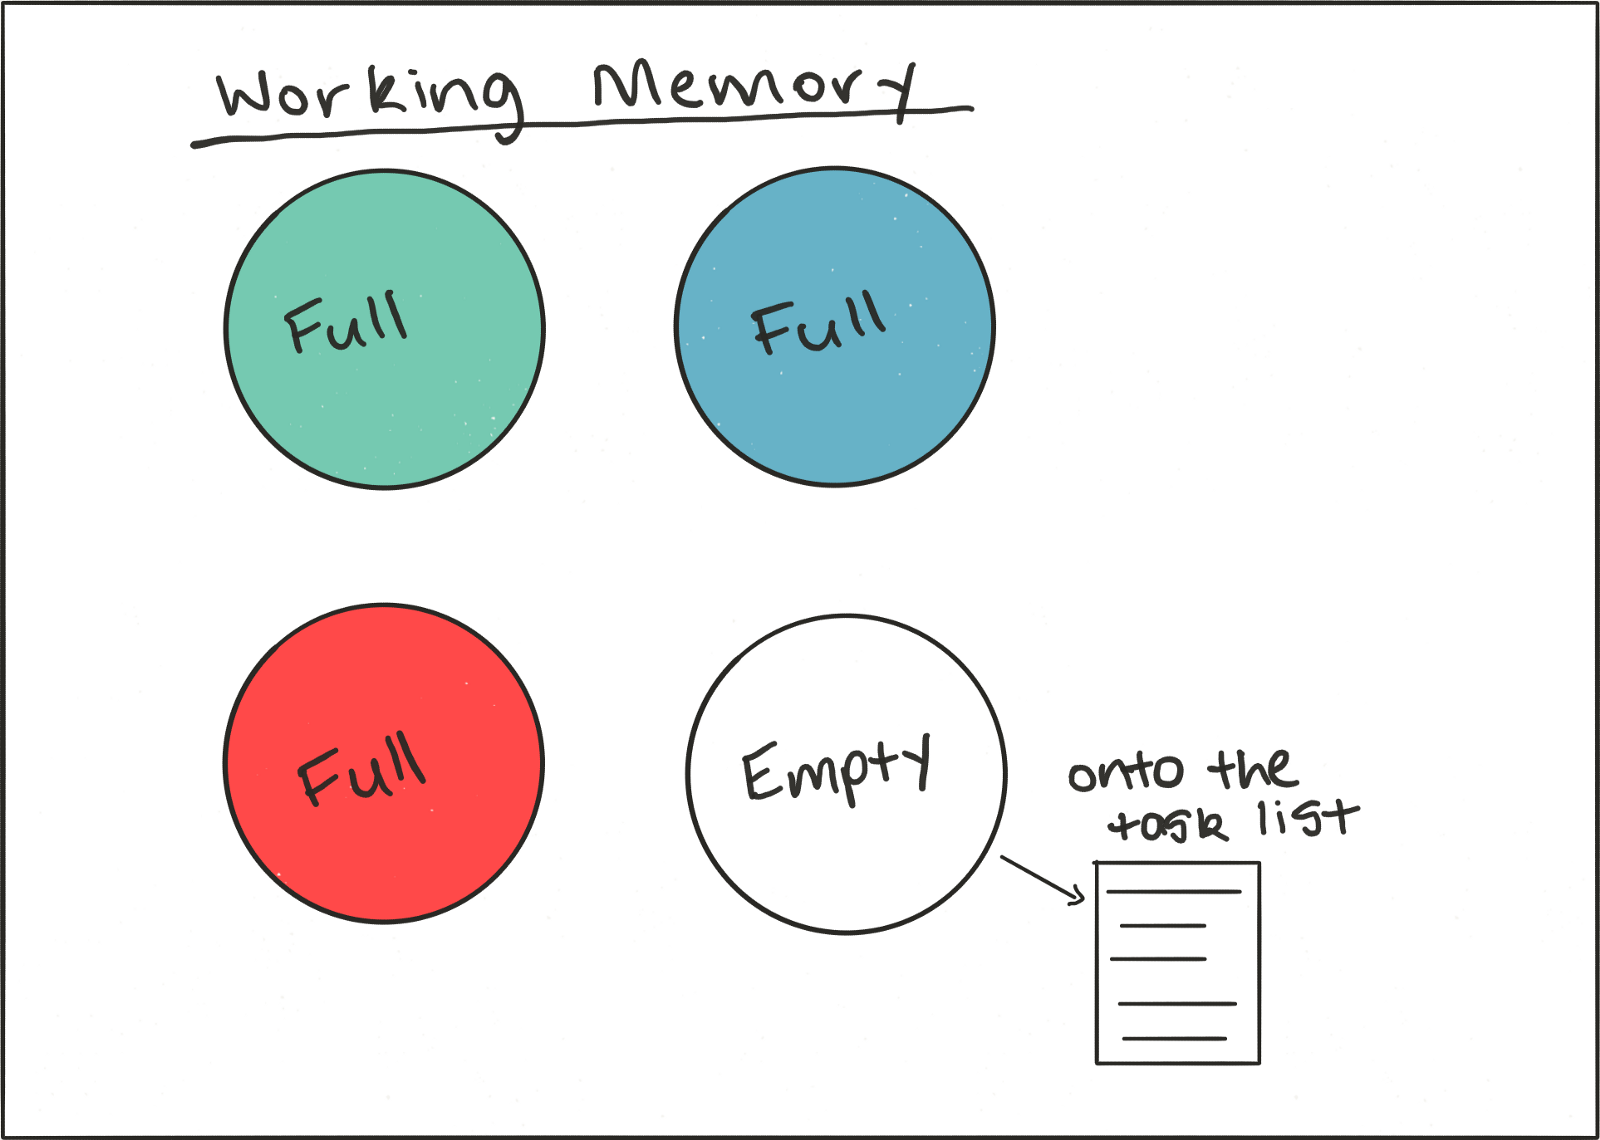 Free up your working memory